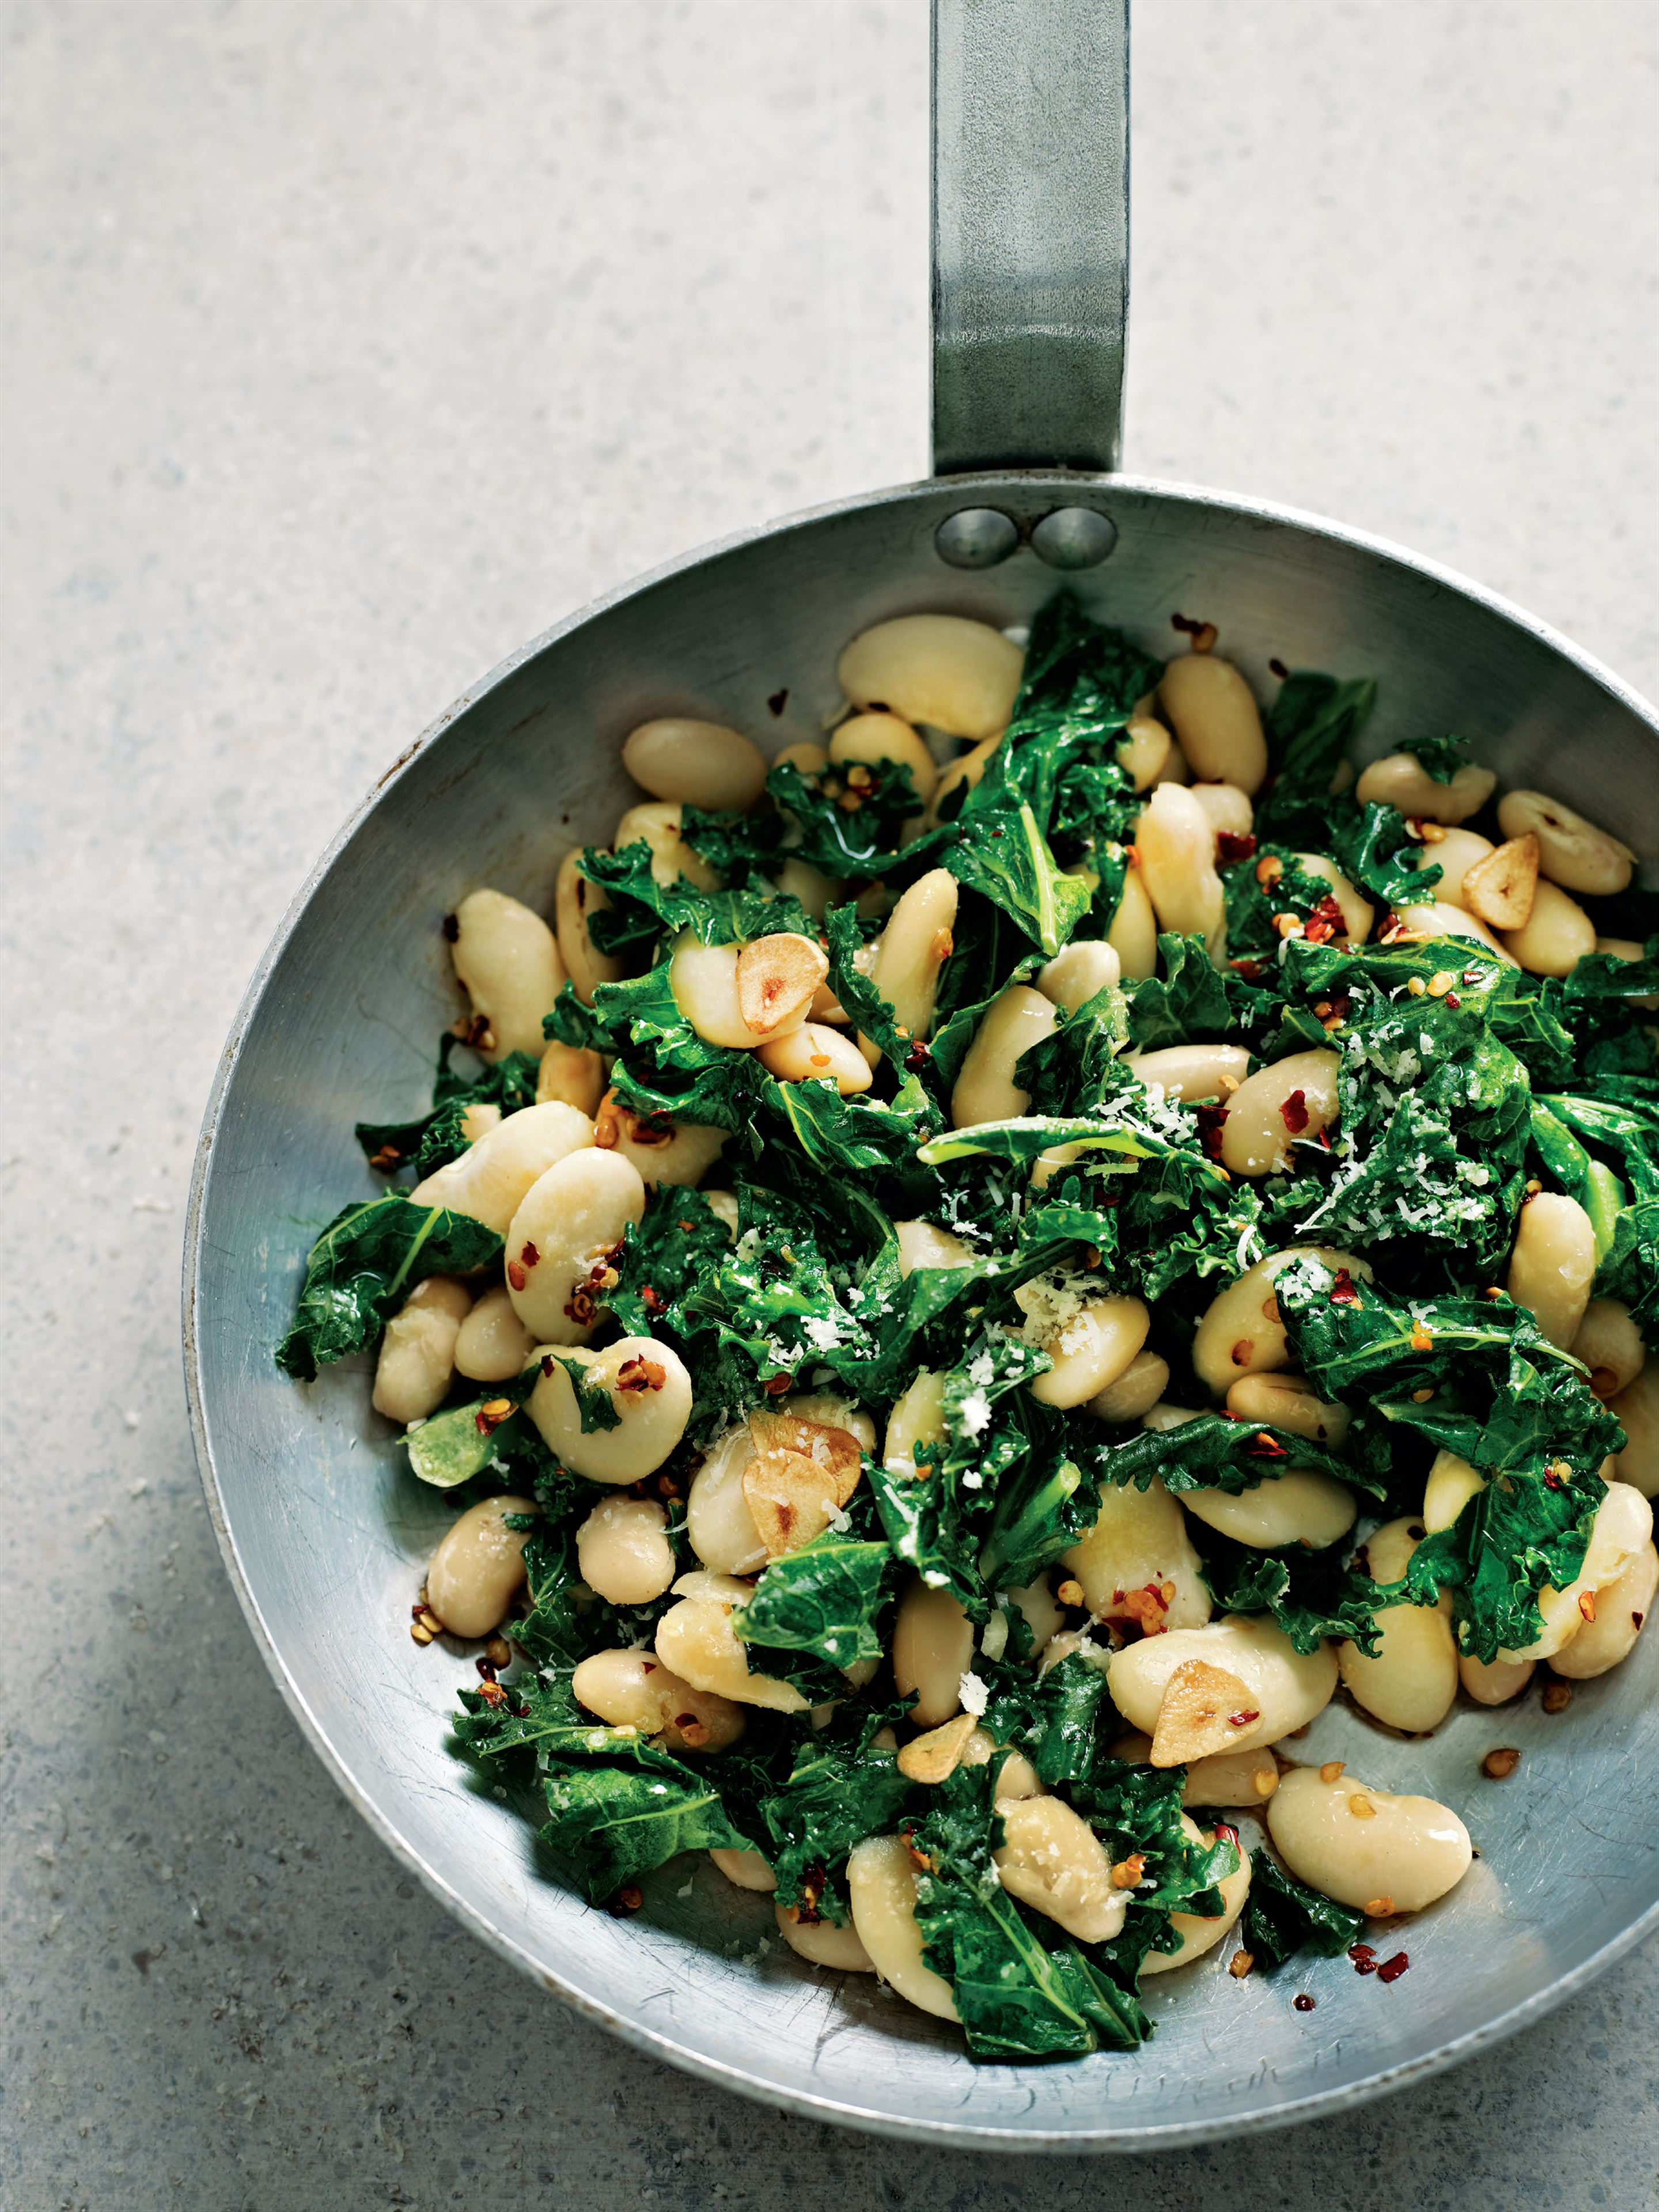 Garlicky white beans with kale and Parmesan